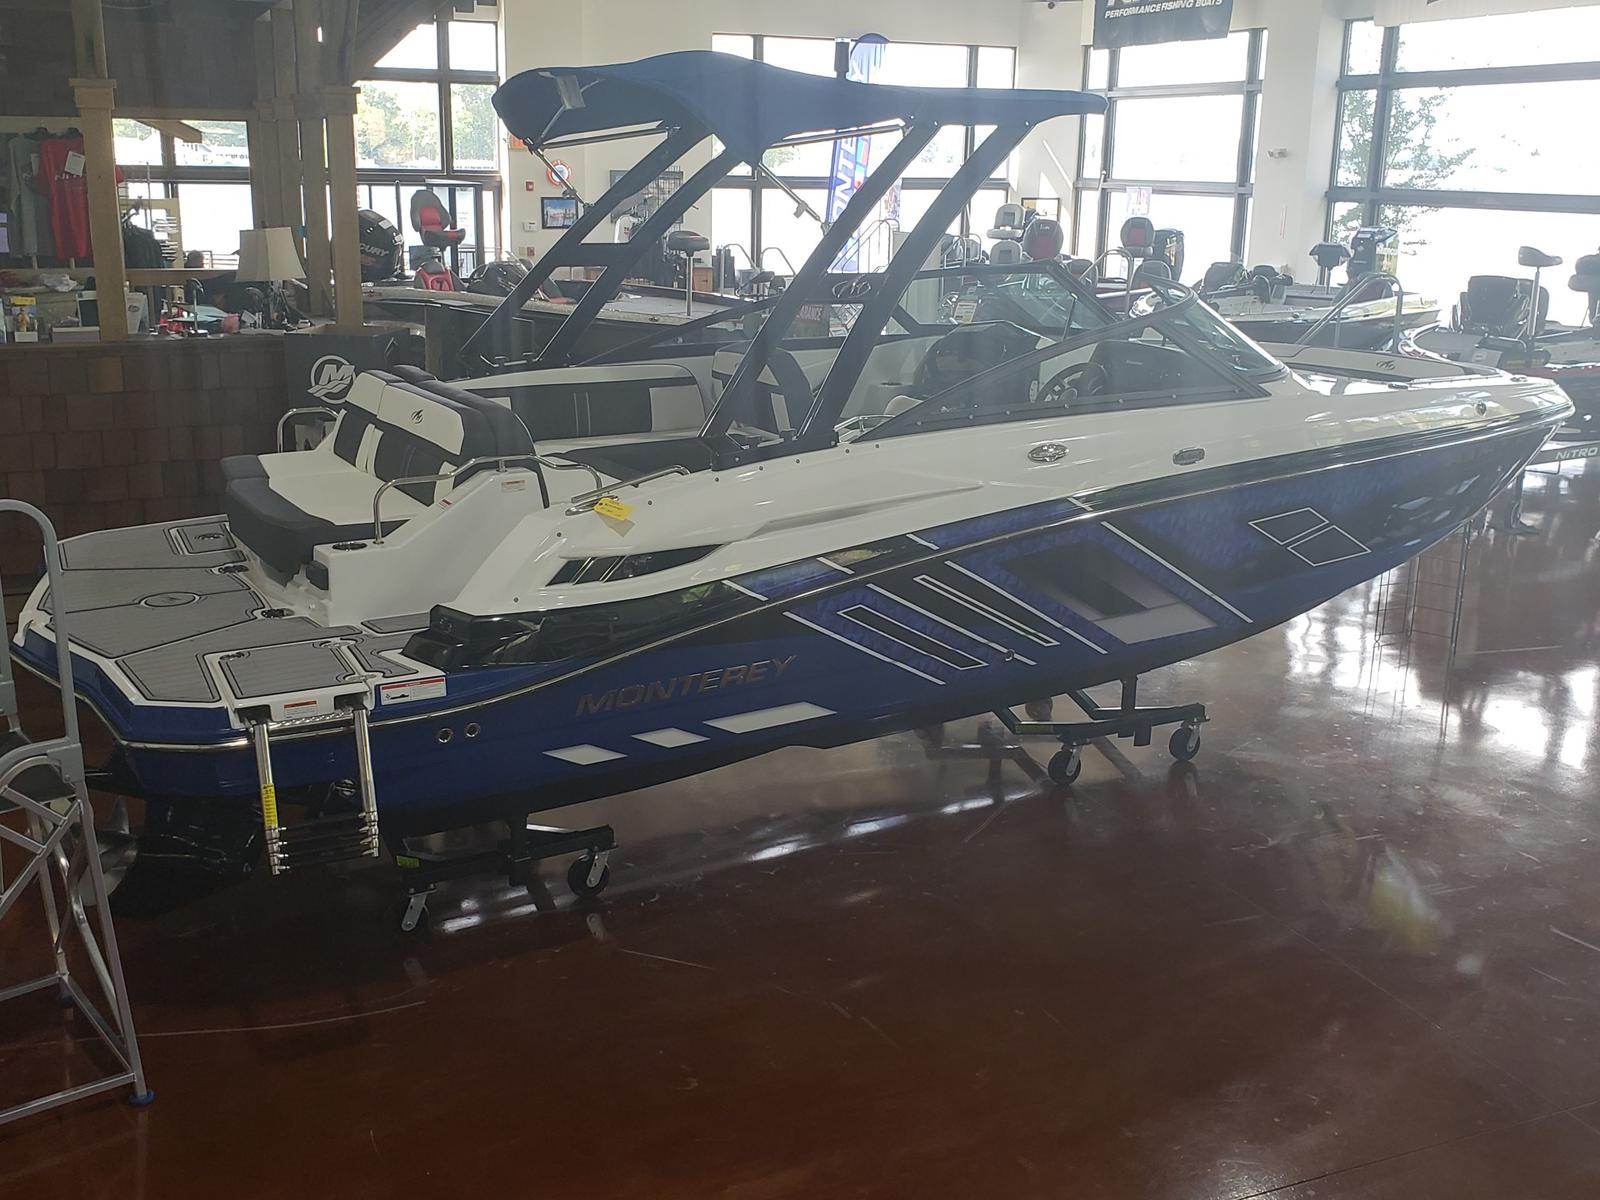 2019 Monterey boat for sale, model of the boat is M4 w/ I/O Mercruiser 300HP CAT.2.2 BR3 & Image # 1 of 2574